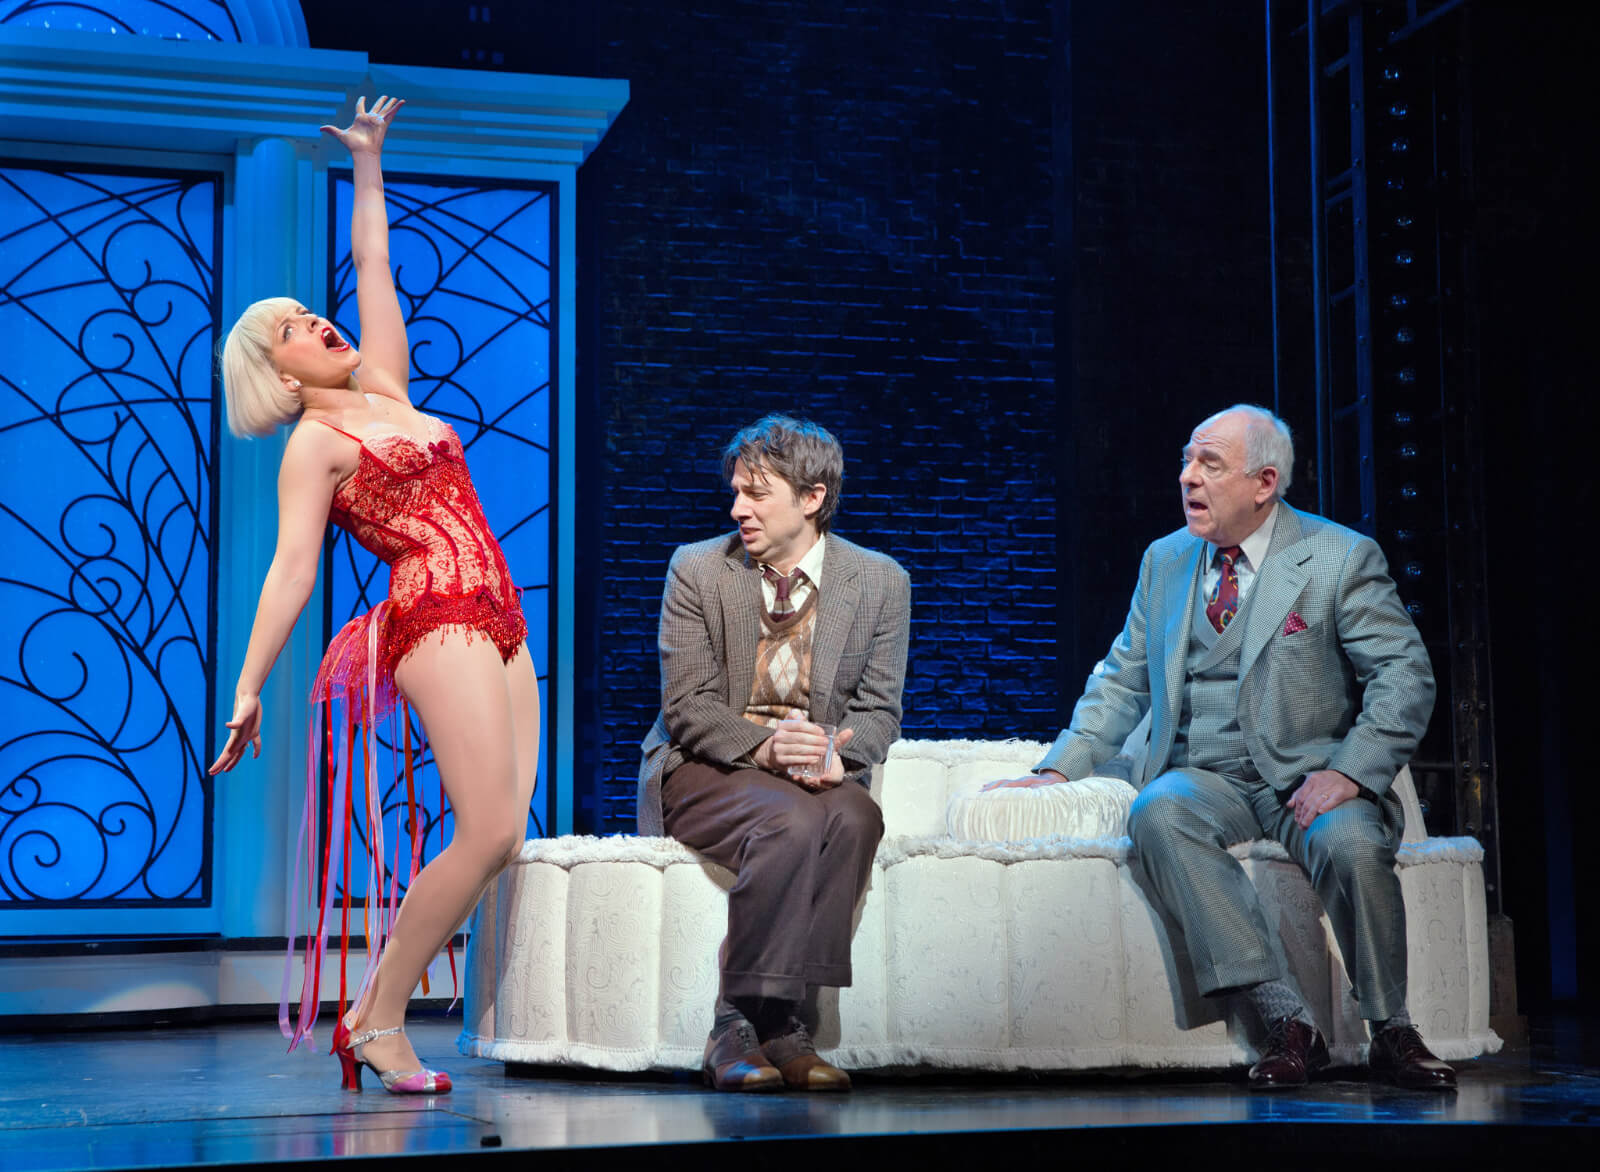 Olive Neal (Heléne Yorke) is dressed in a red sparkly leotard and singing about a hot dog. Zach Braff and Lenny Wolpe look on uncomfortably.